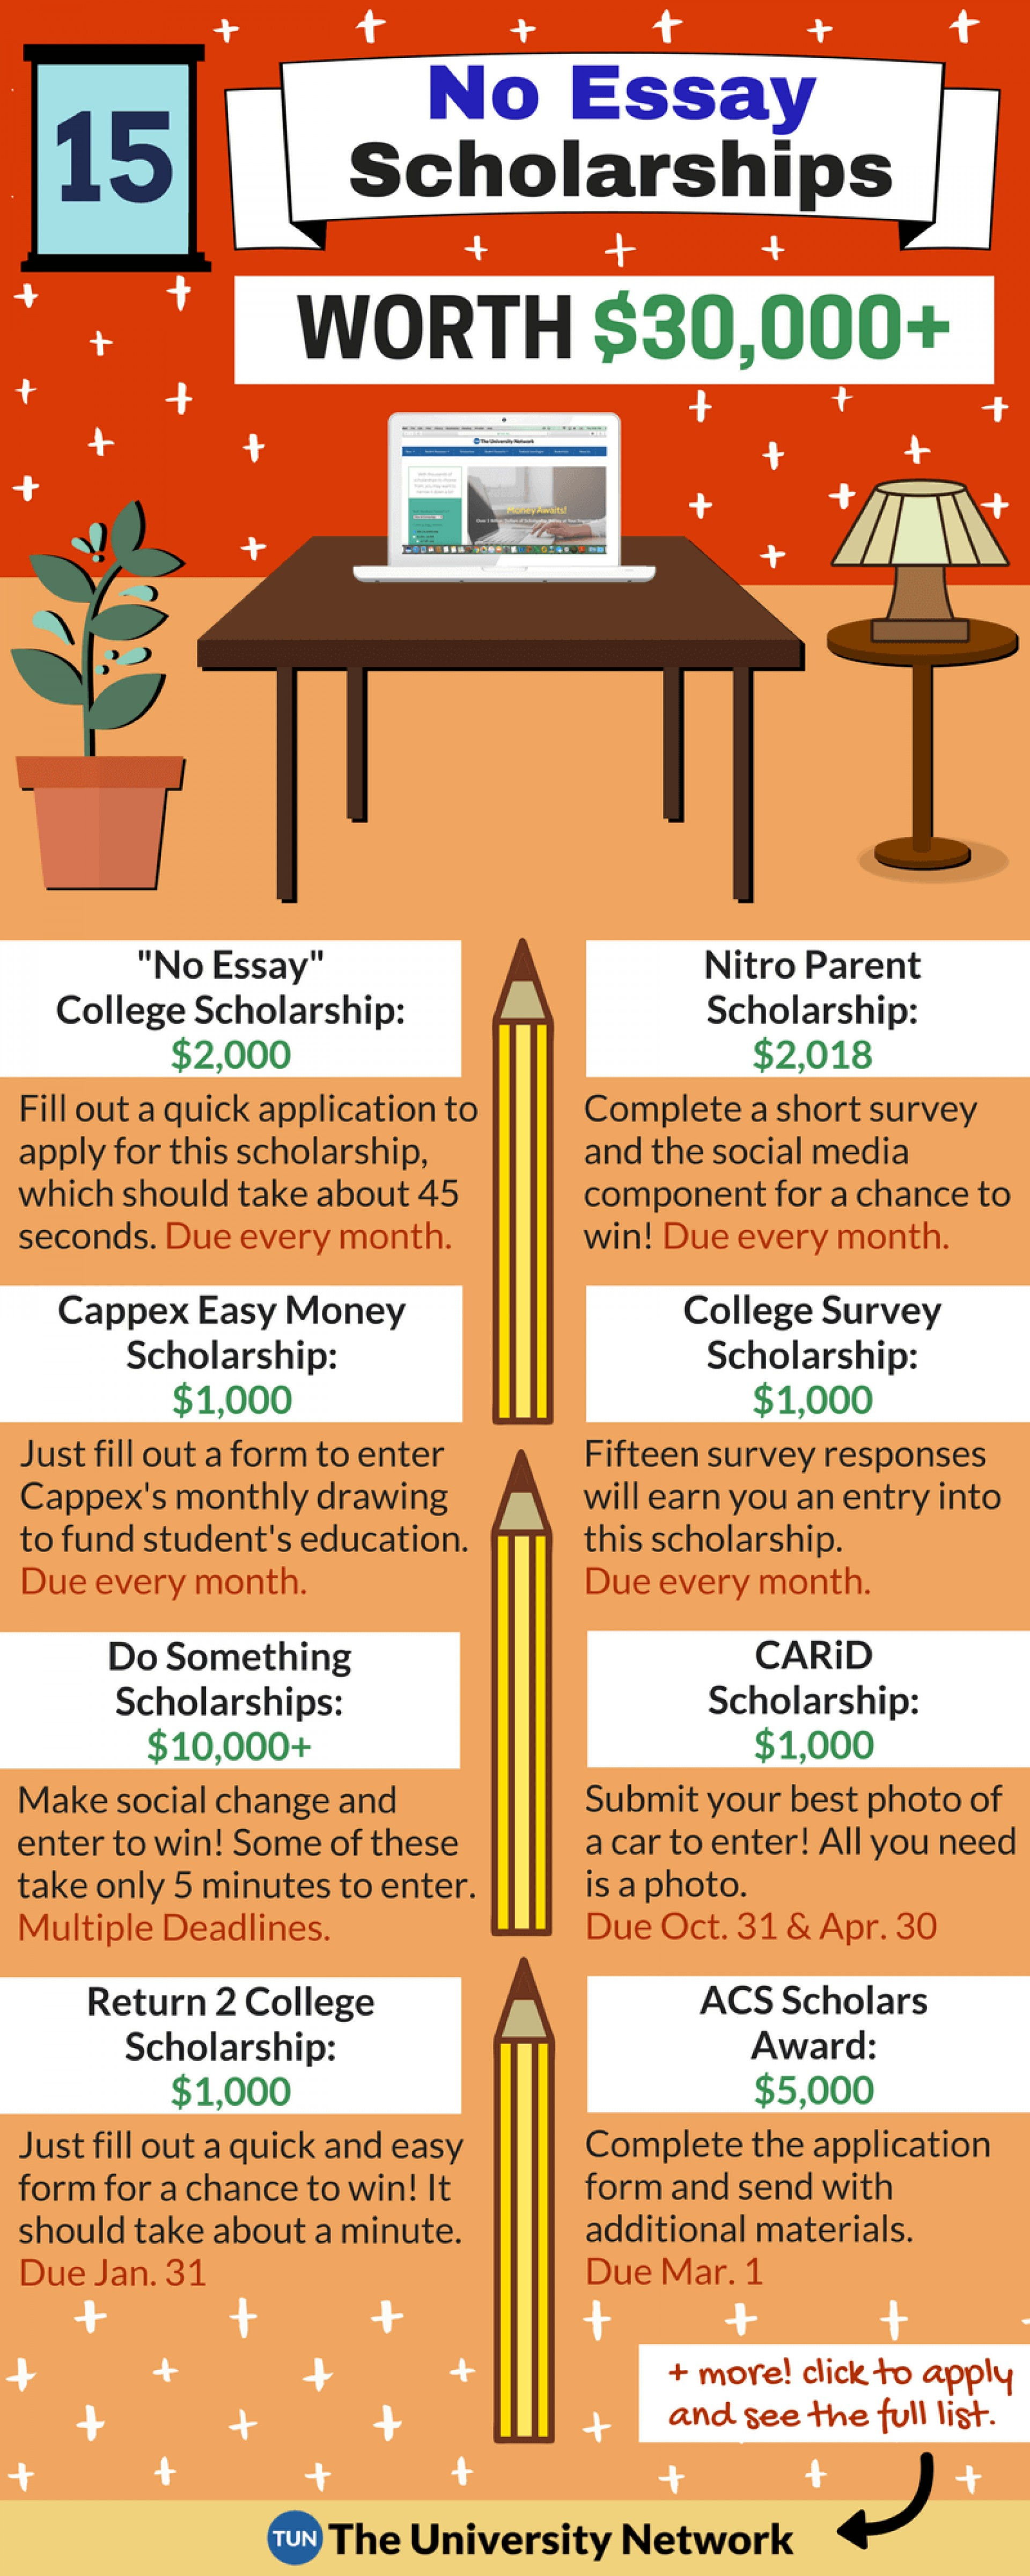 011 No Essay Scholarships For College Students Awful 2019 1920